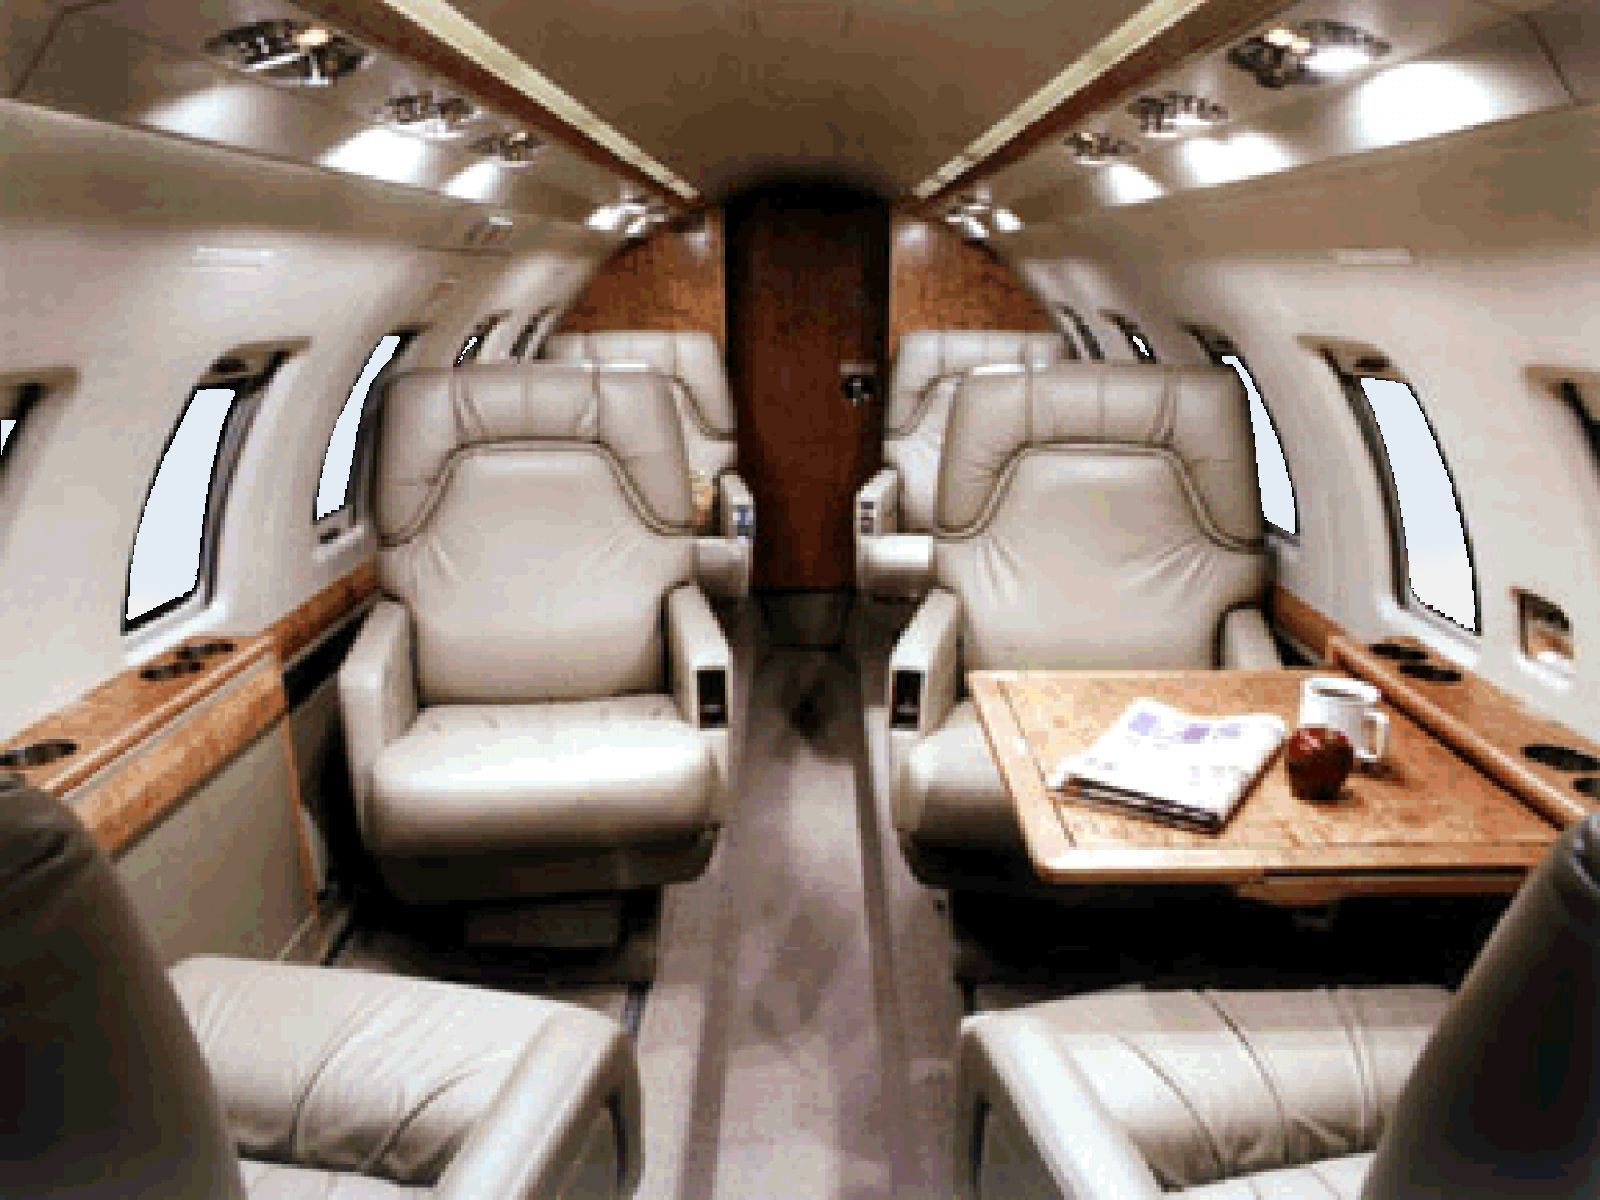 Executive Windows The Hawker 800 showing the internal view of the passenger area